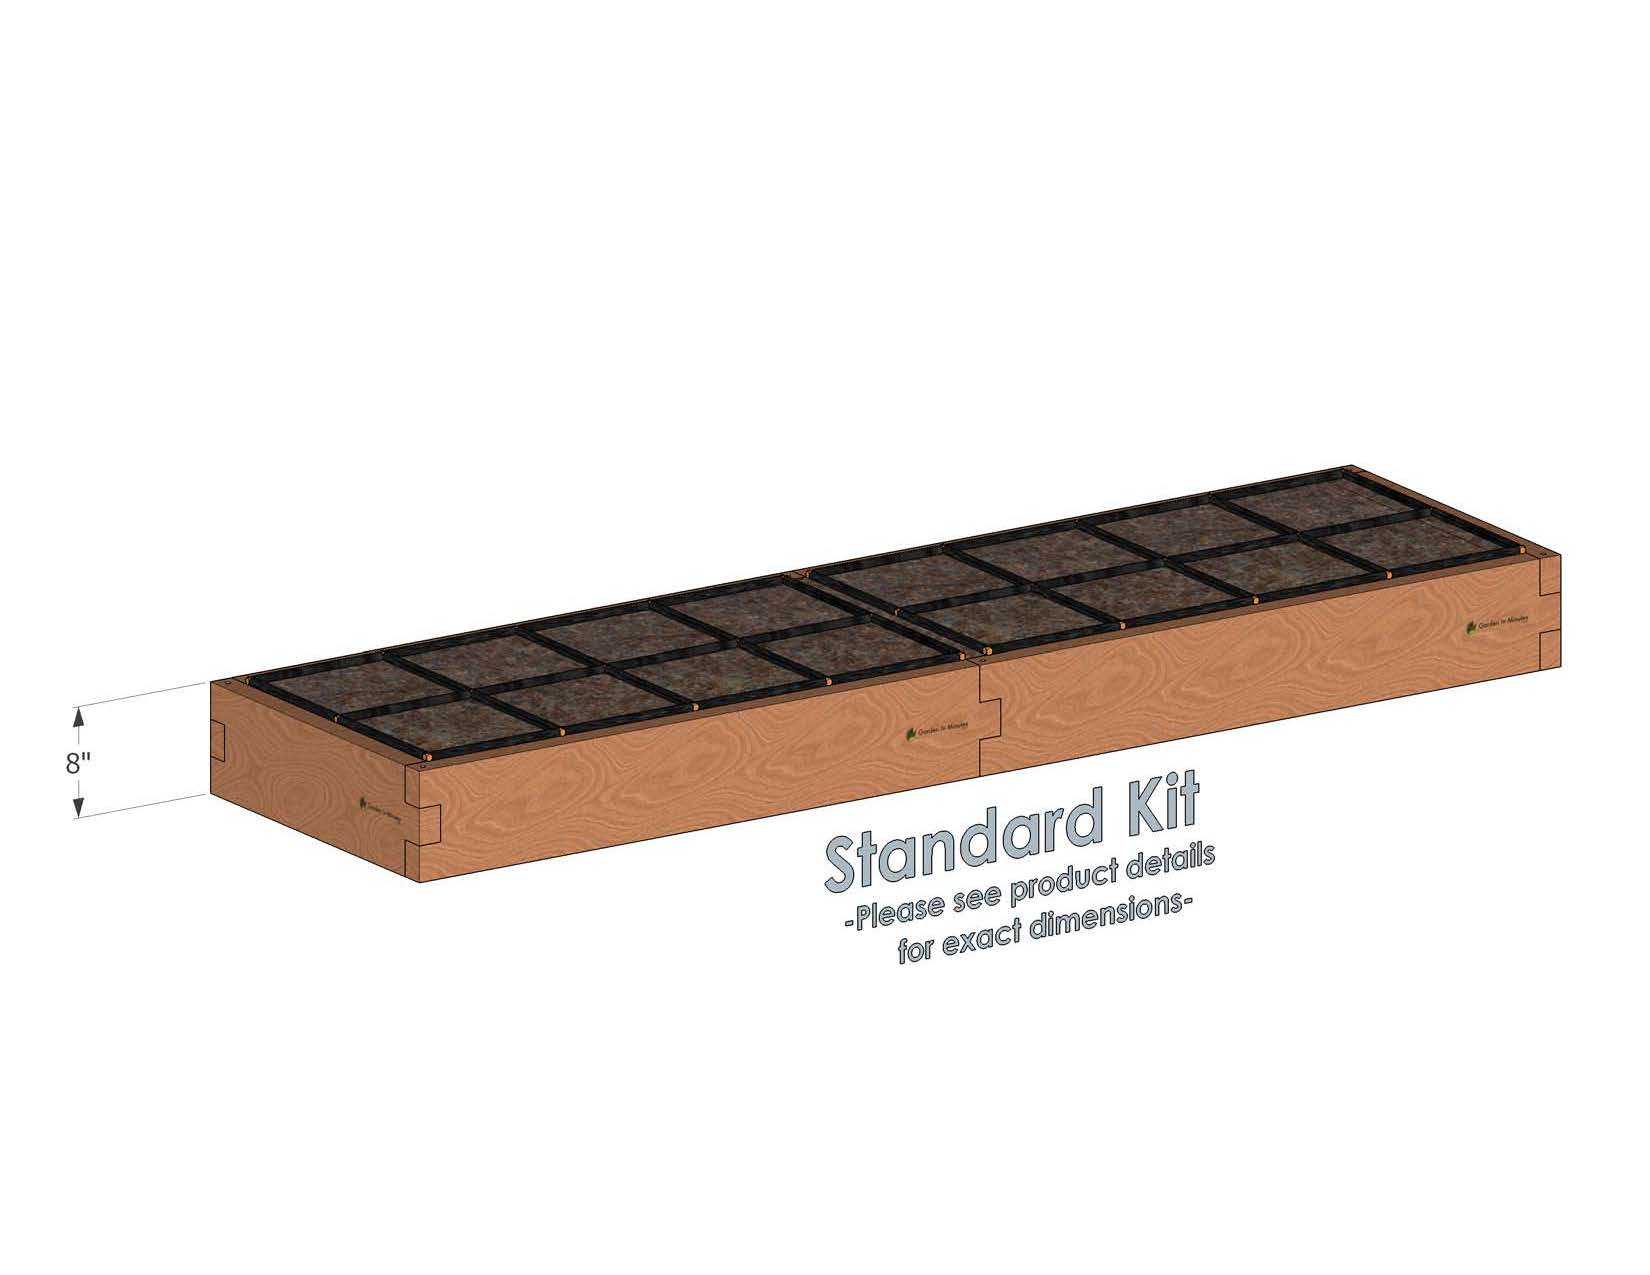 2x8 Raised Garden Kit Standard Height